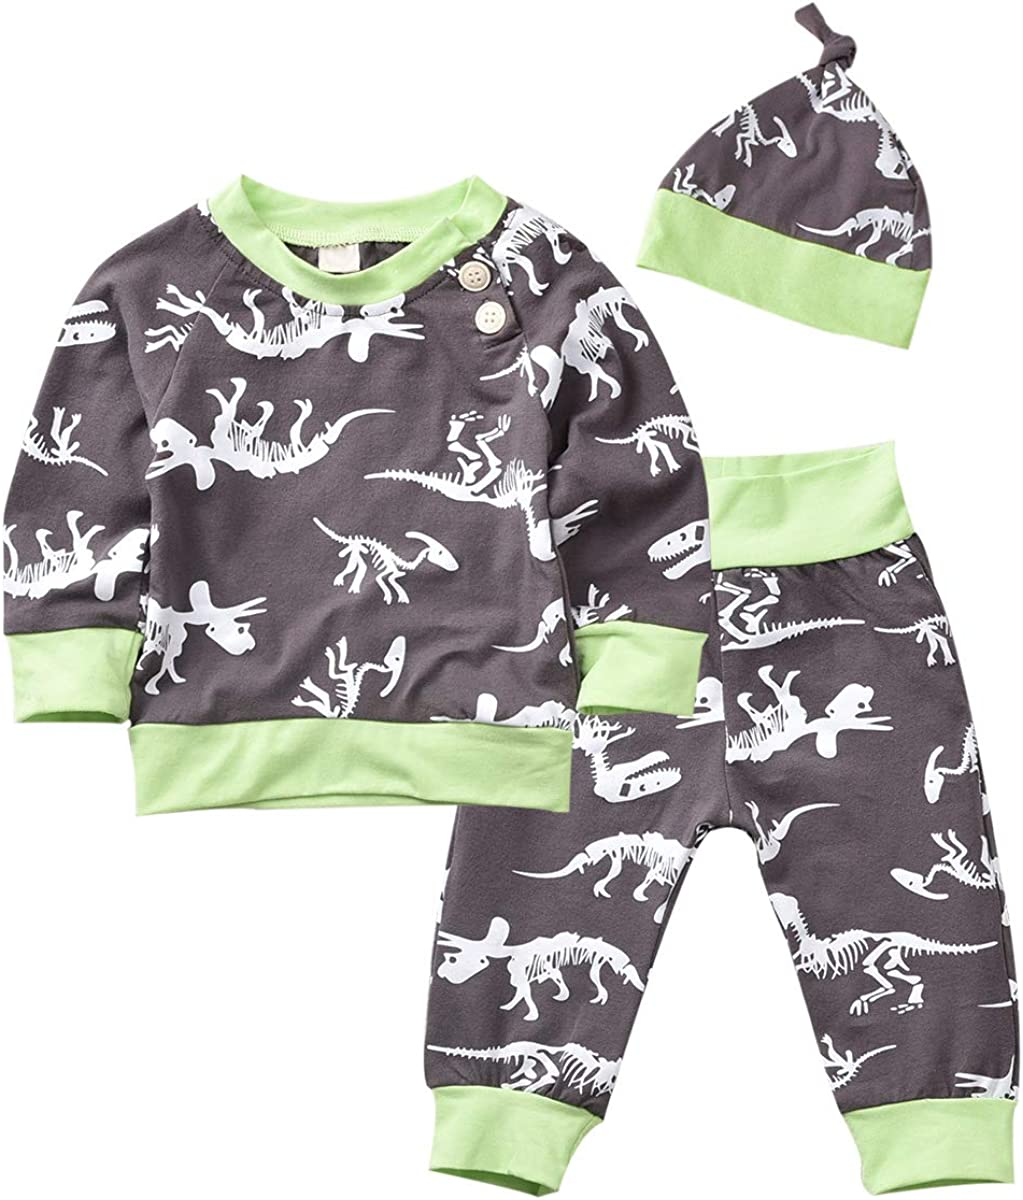 Fioukiay Lovely 3Pcs Baby Boys Girls Christmas Outfits Set T-Shirt Tops Cotton Pants with Hat Clothes